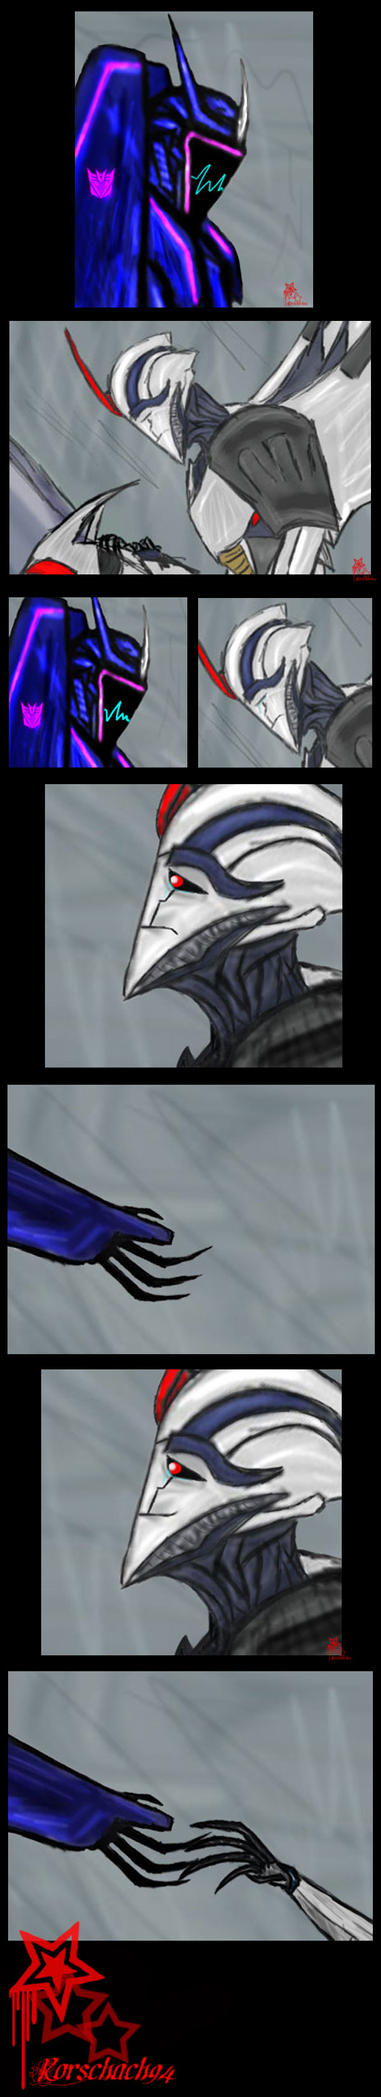 Soundwave's Mad World Part 2 by Rorschach94